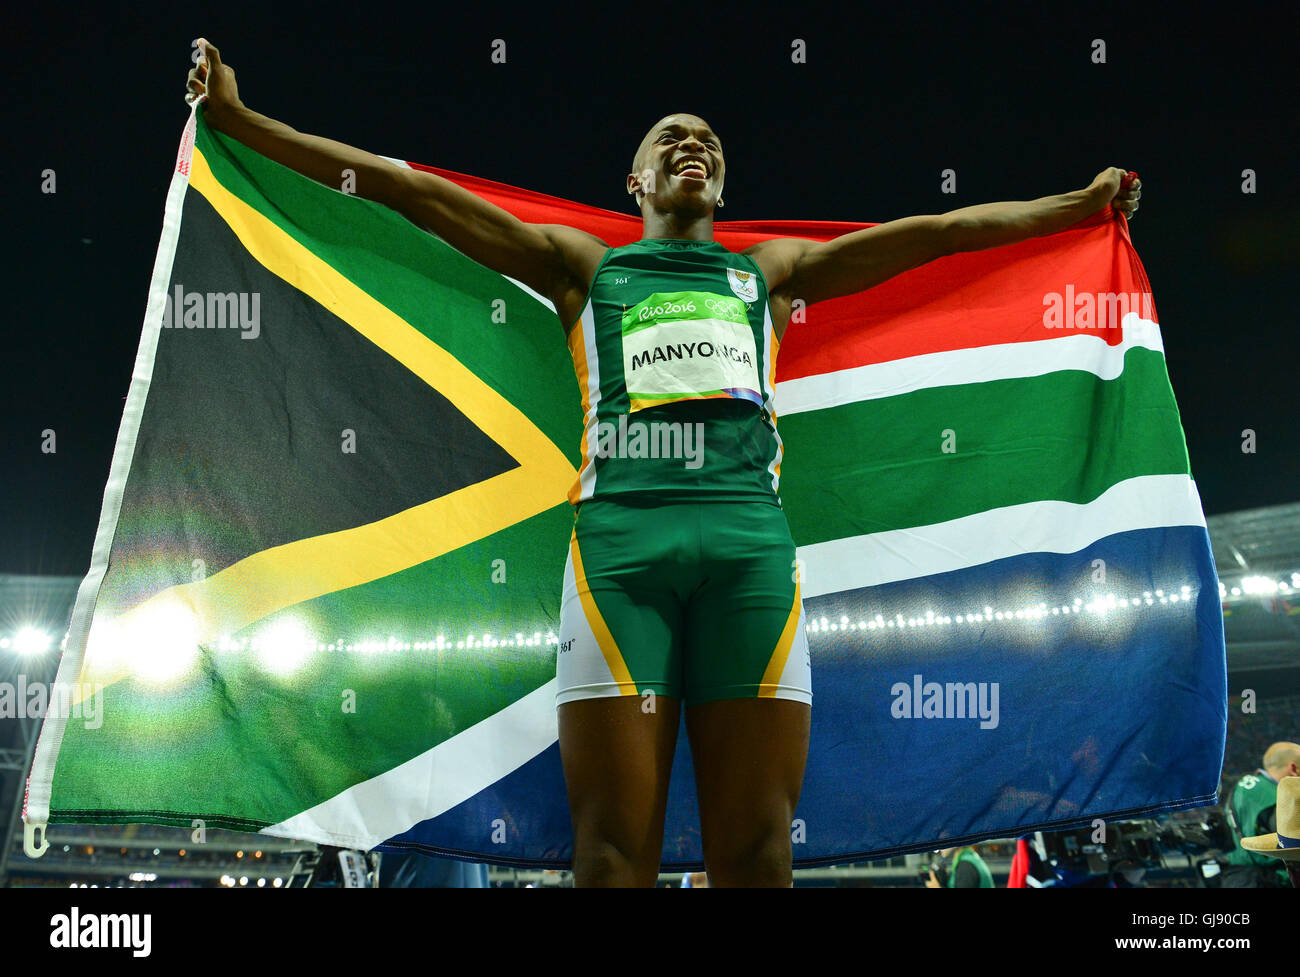 RIO DE JANEIRO, BRAZIL - AUGUST 13: Luvo Manyonga of South Africa hold the South African national flag high after - Stock Image